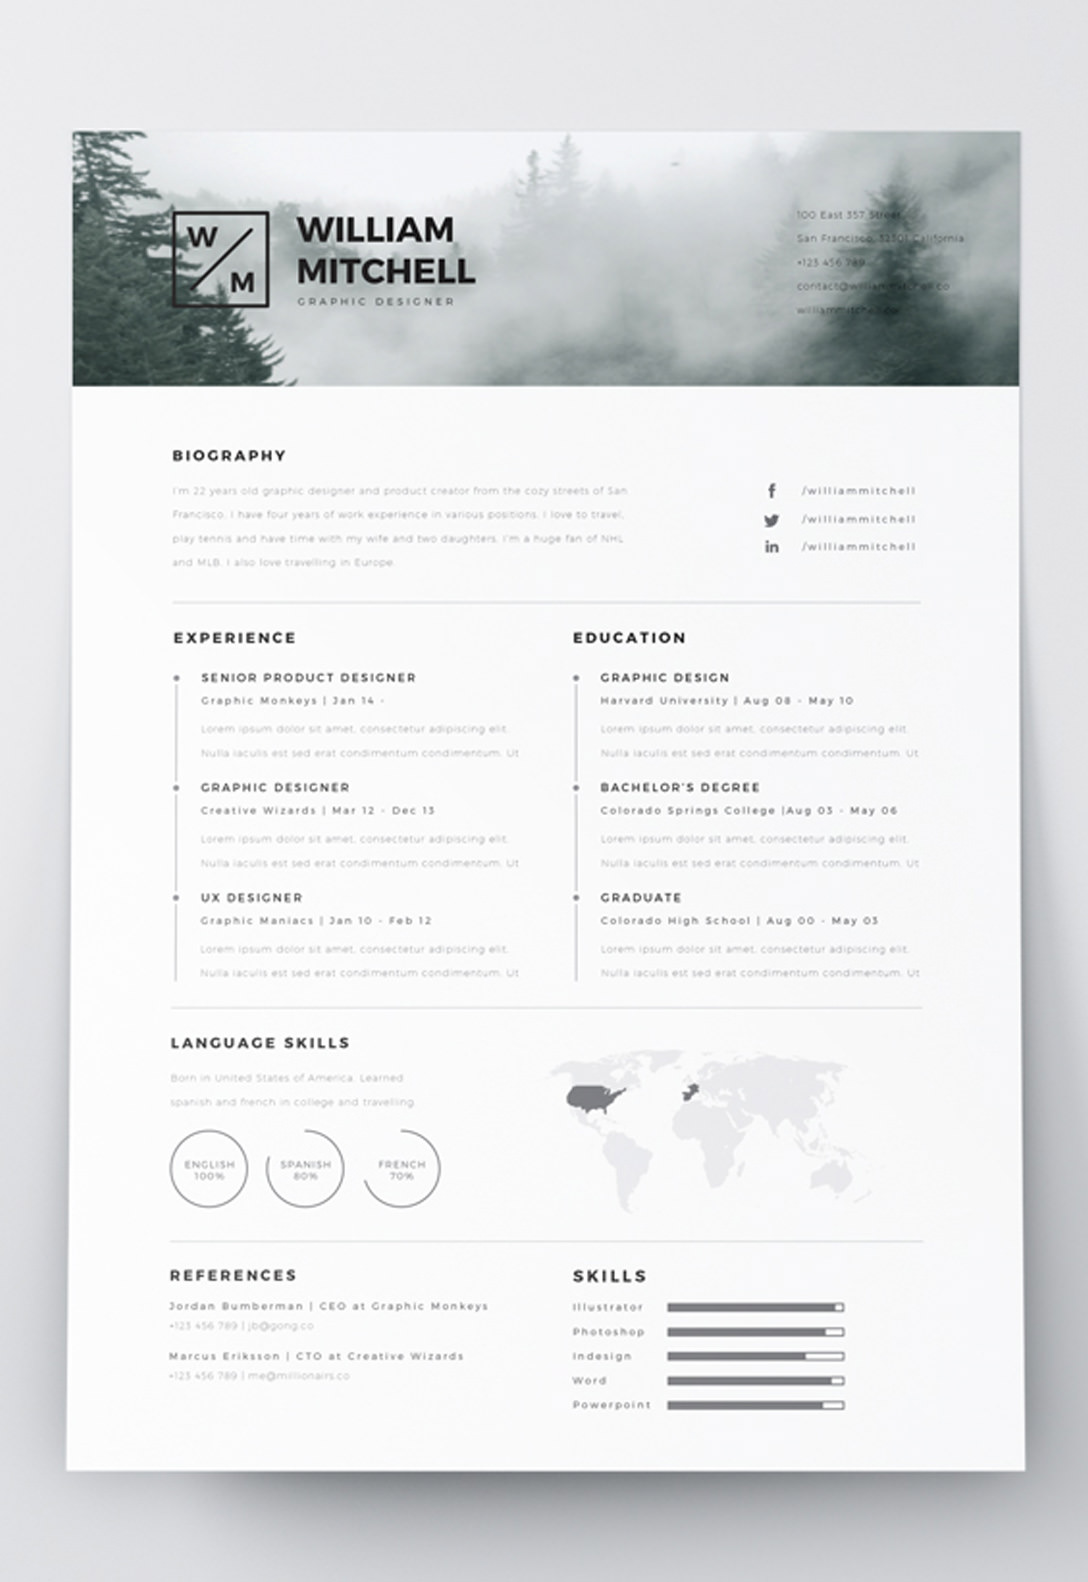 Resume Templates Adobe - Resume Examples | Resume Template